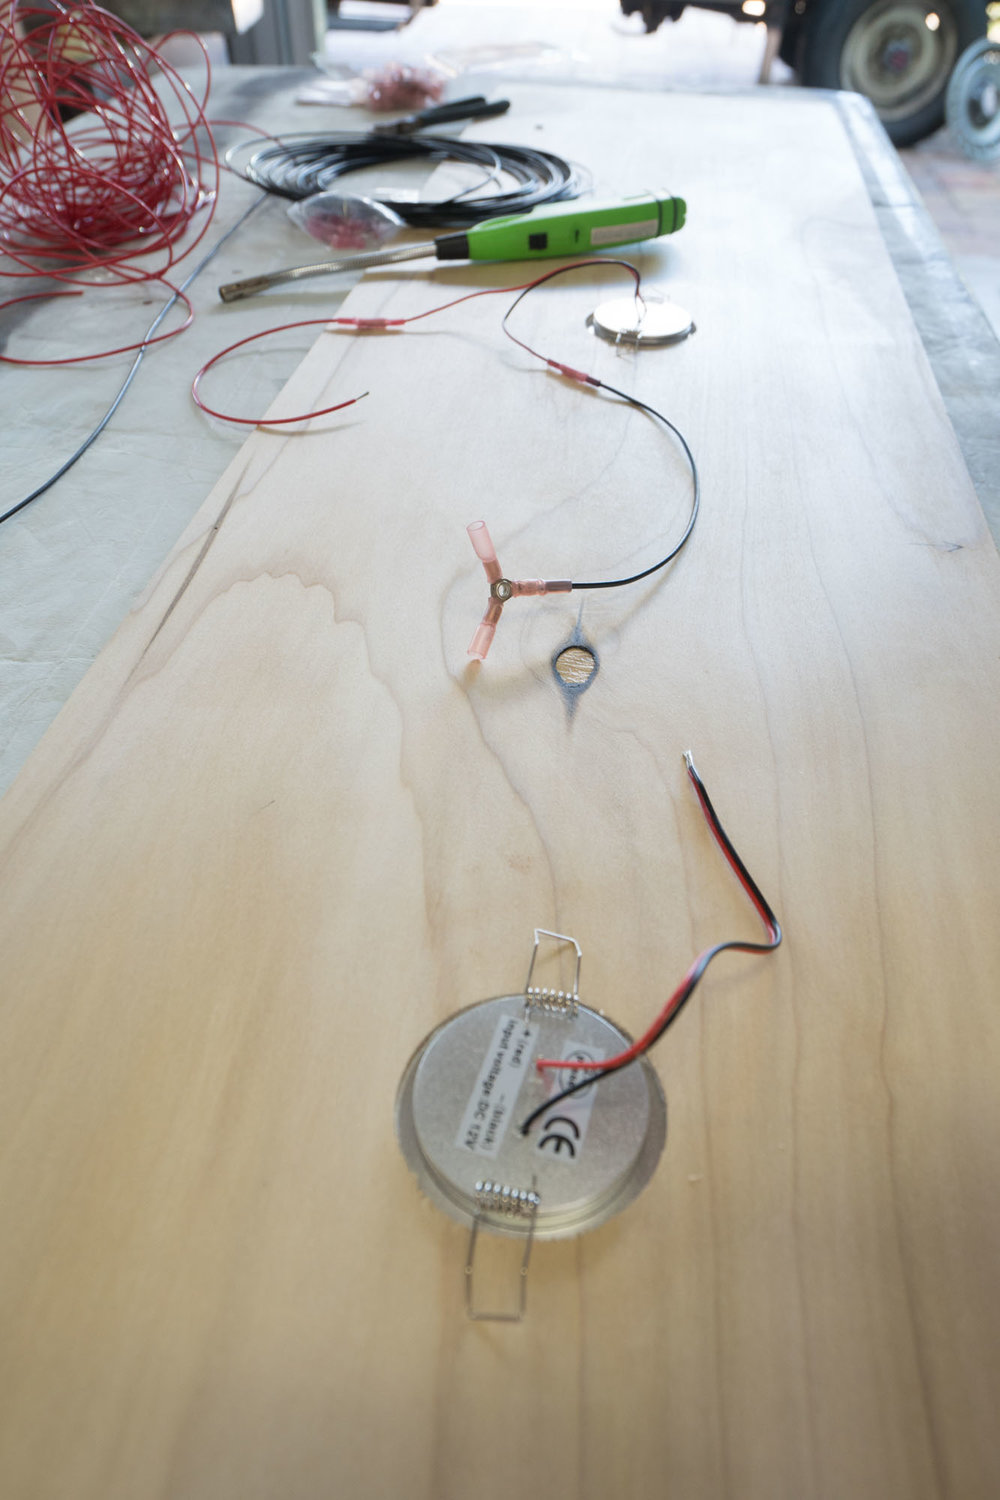 Wiring lights